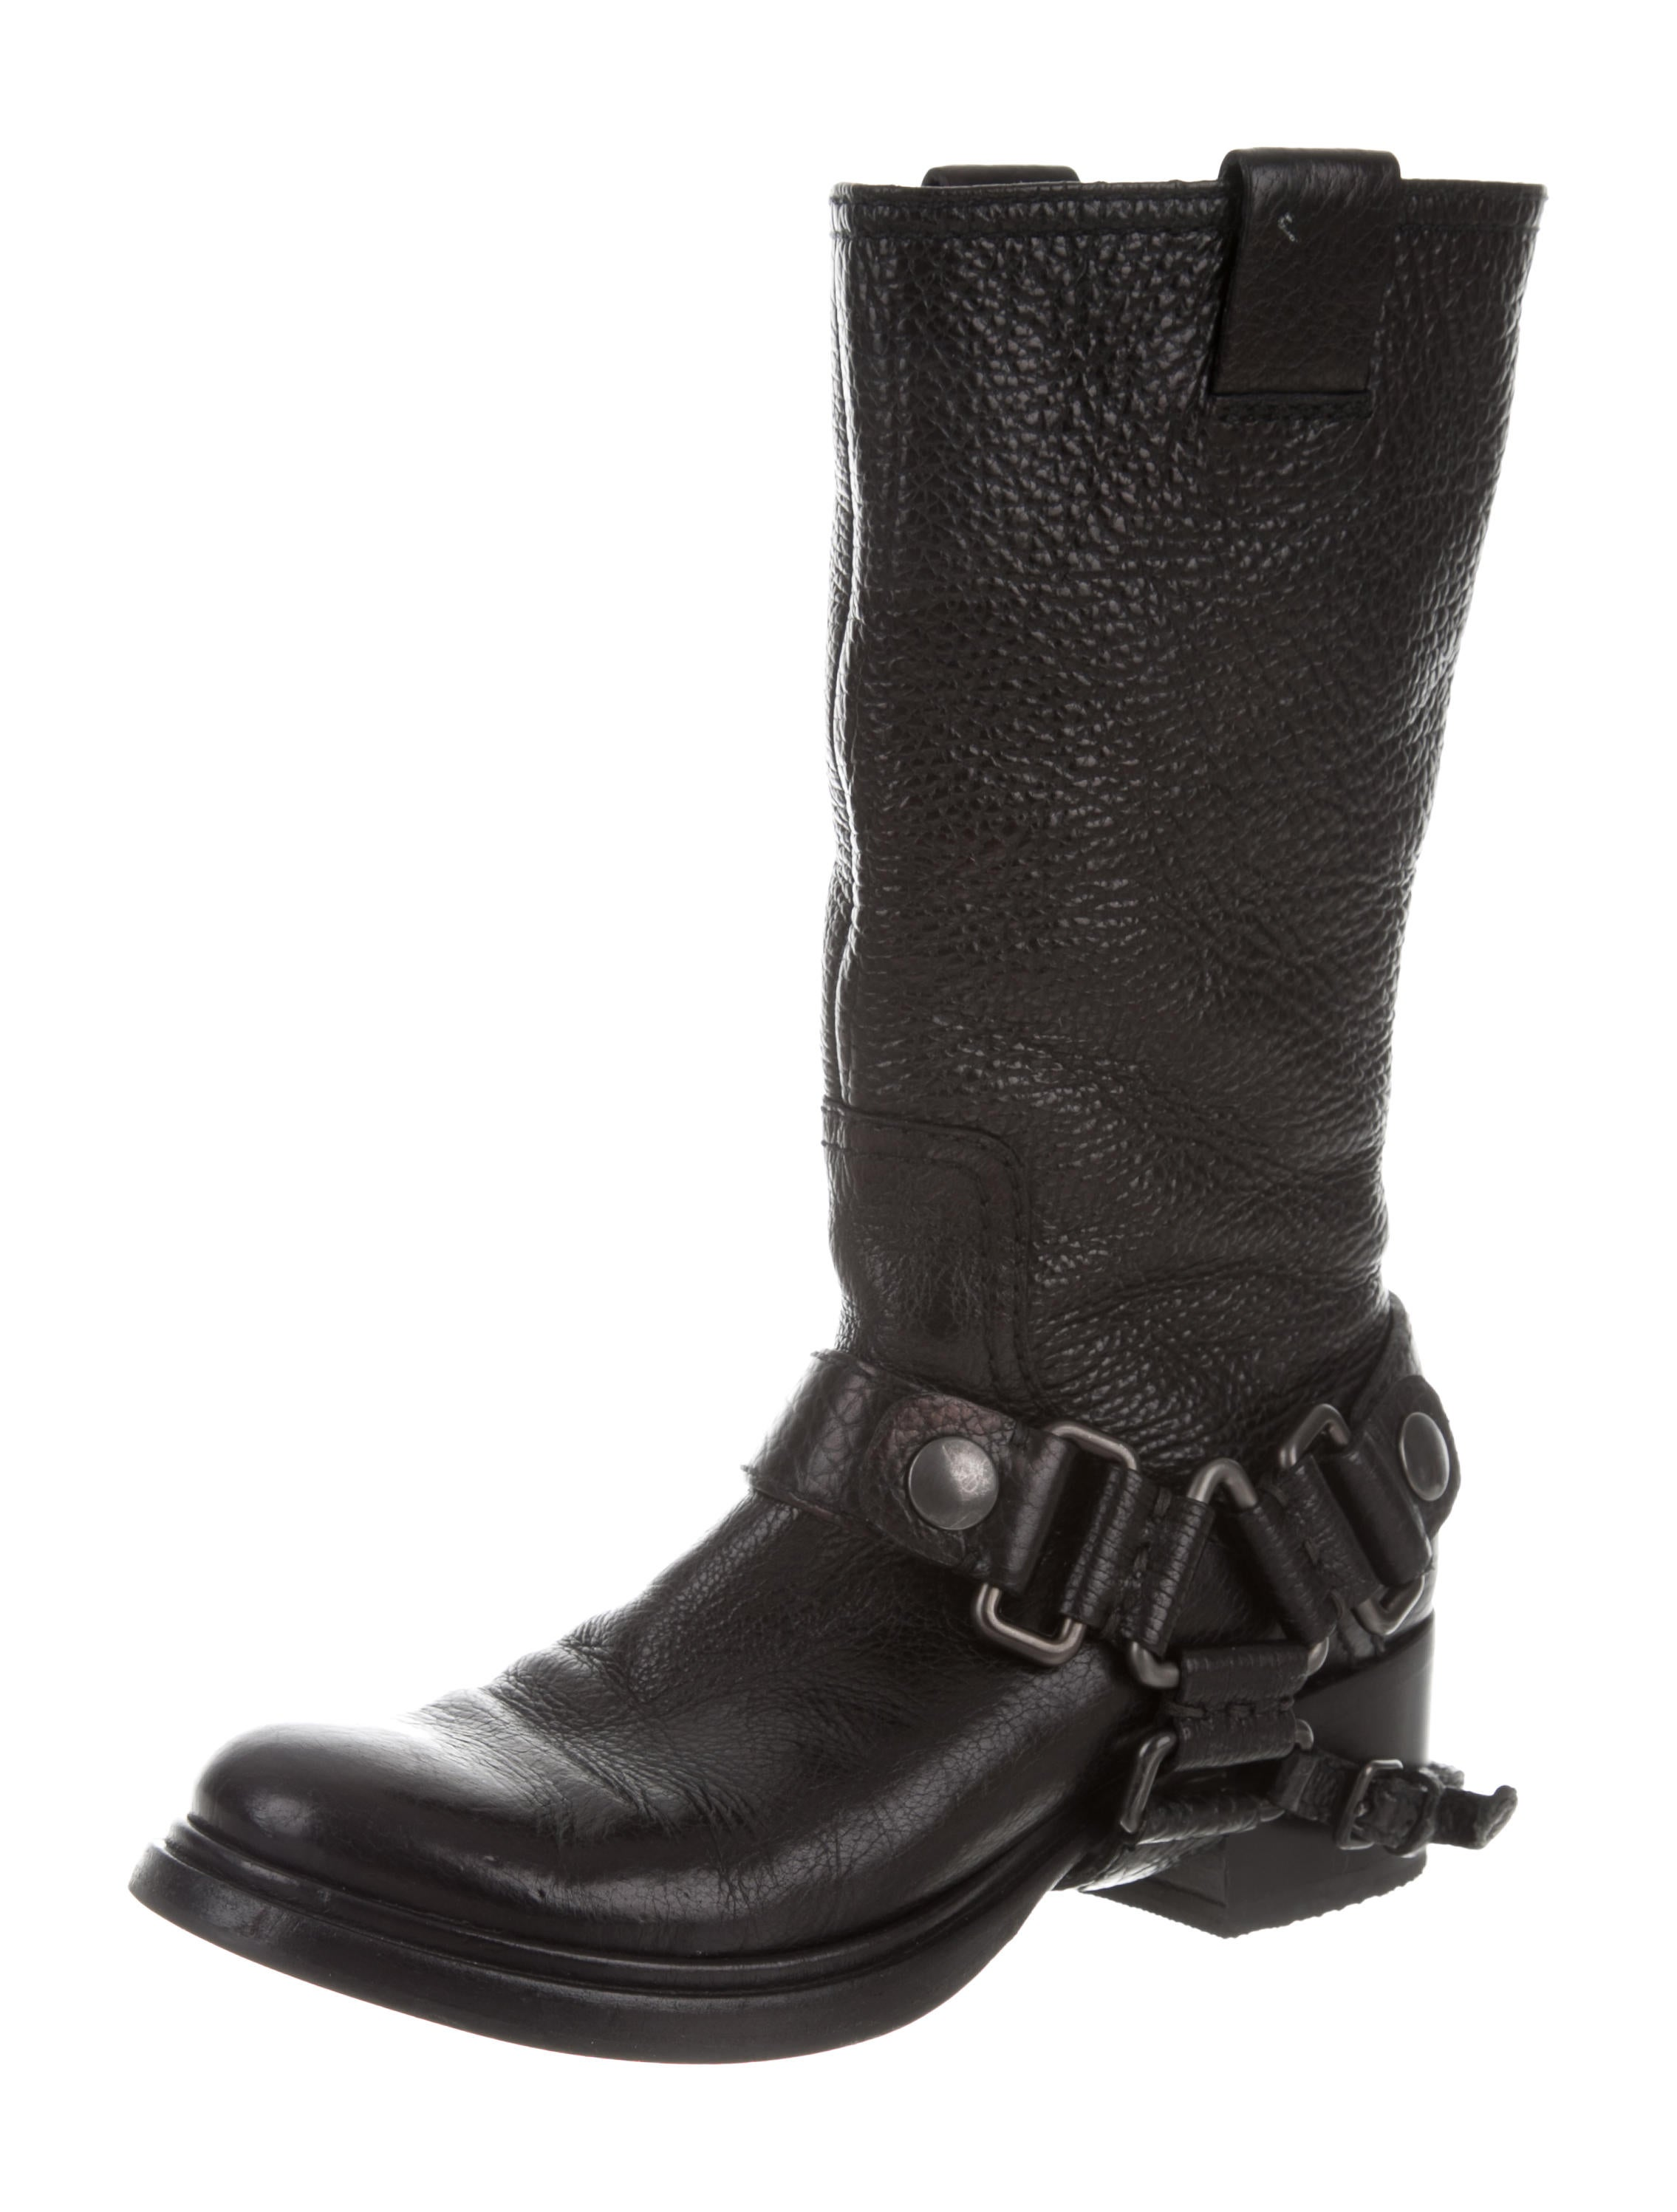 finishline online Miu Miu Leather Moto Boots visa payment cheap online sale 2014 newest K0S3rDD